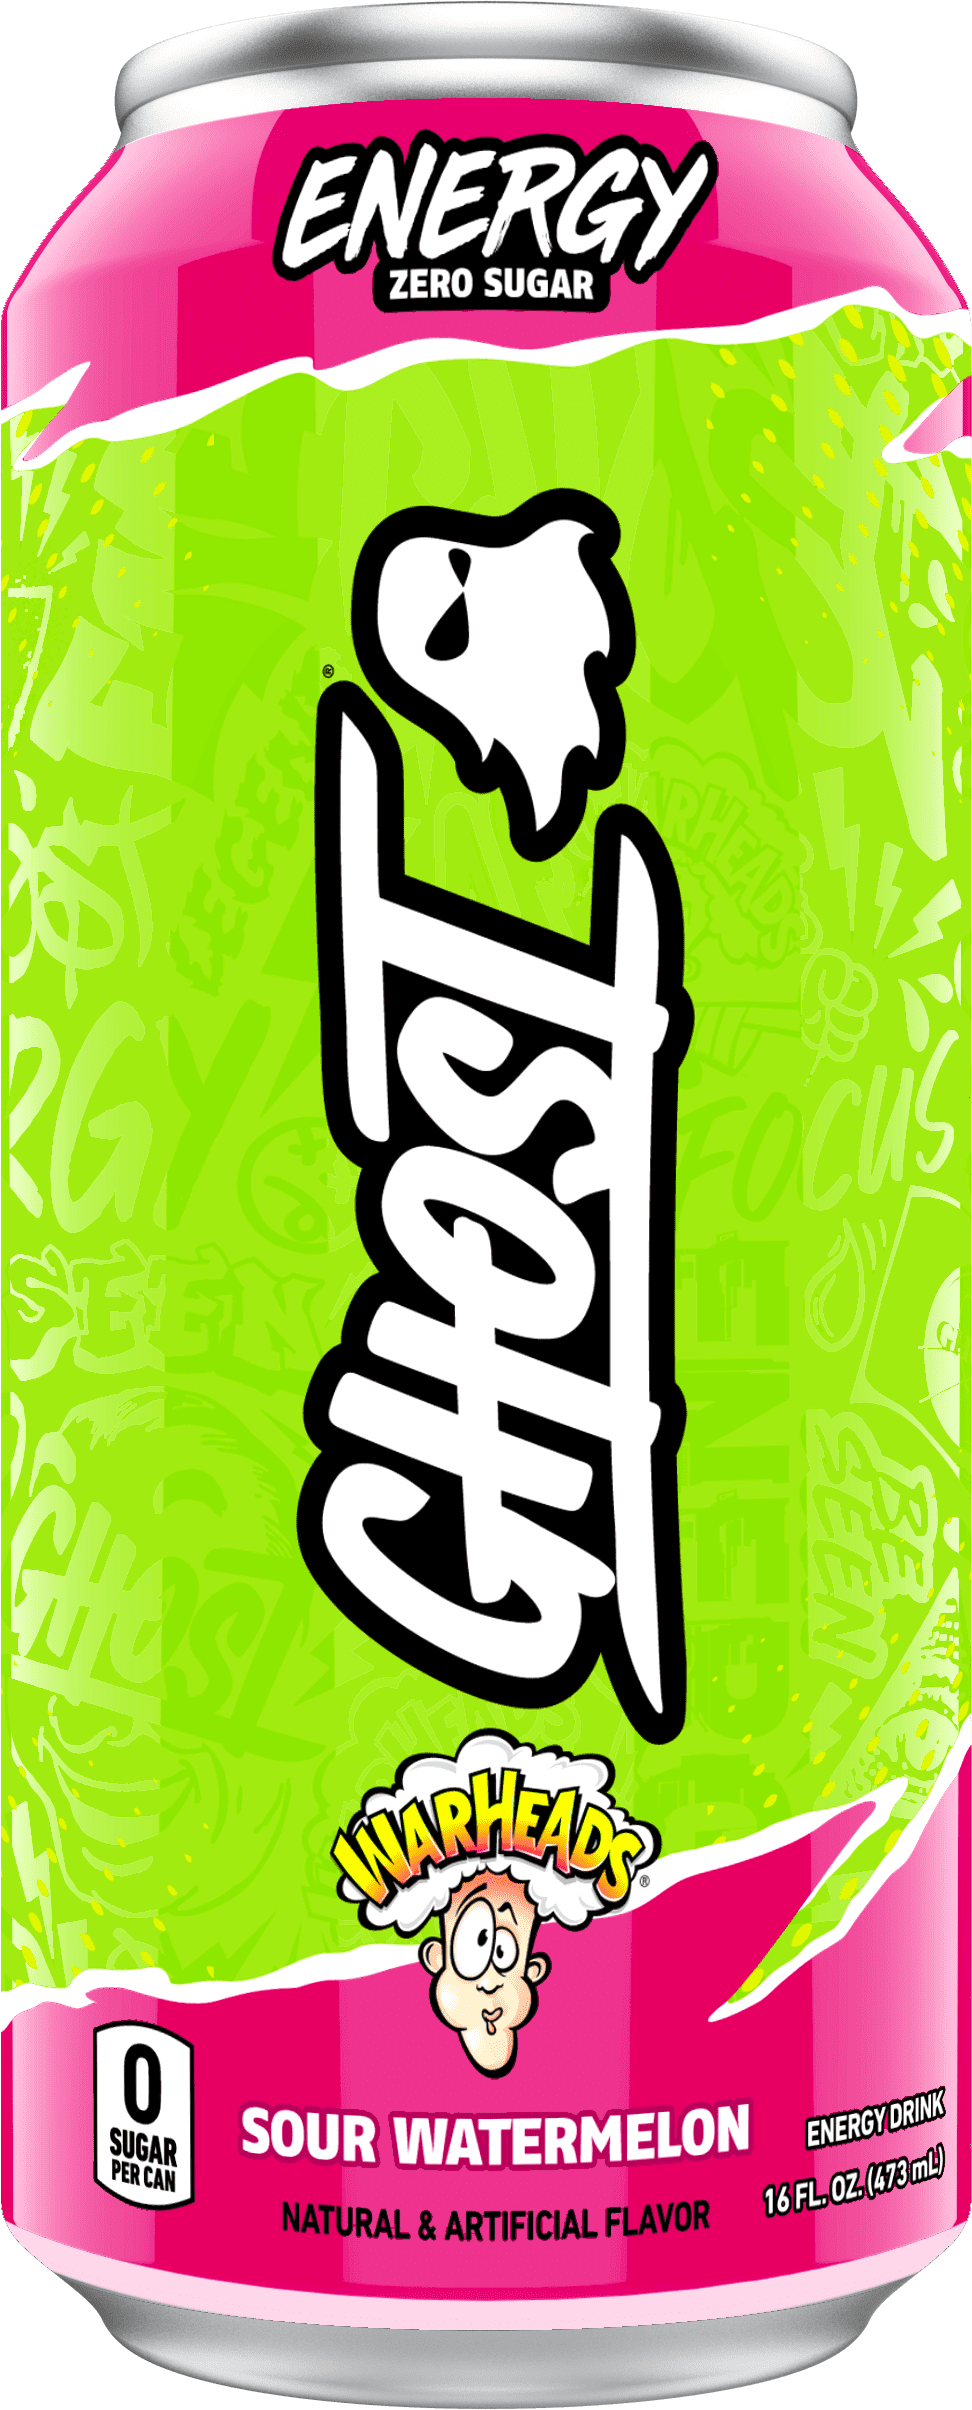 ghost energy warheads sour watermelon